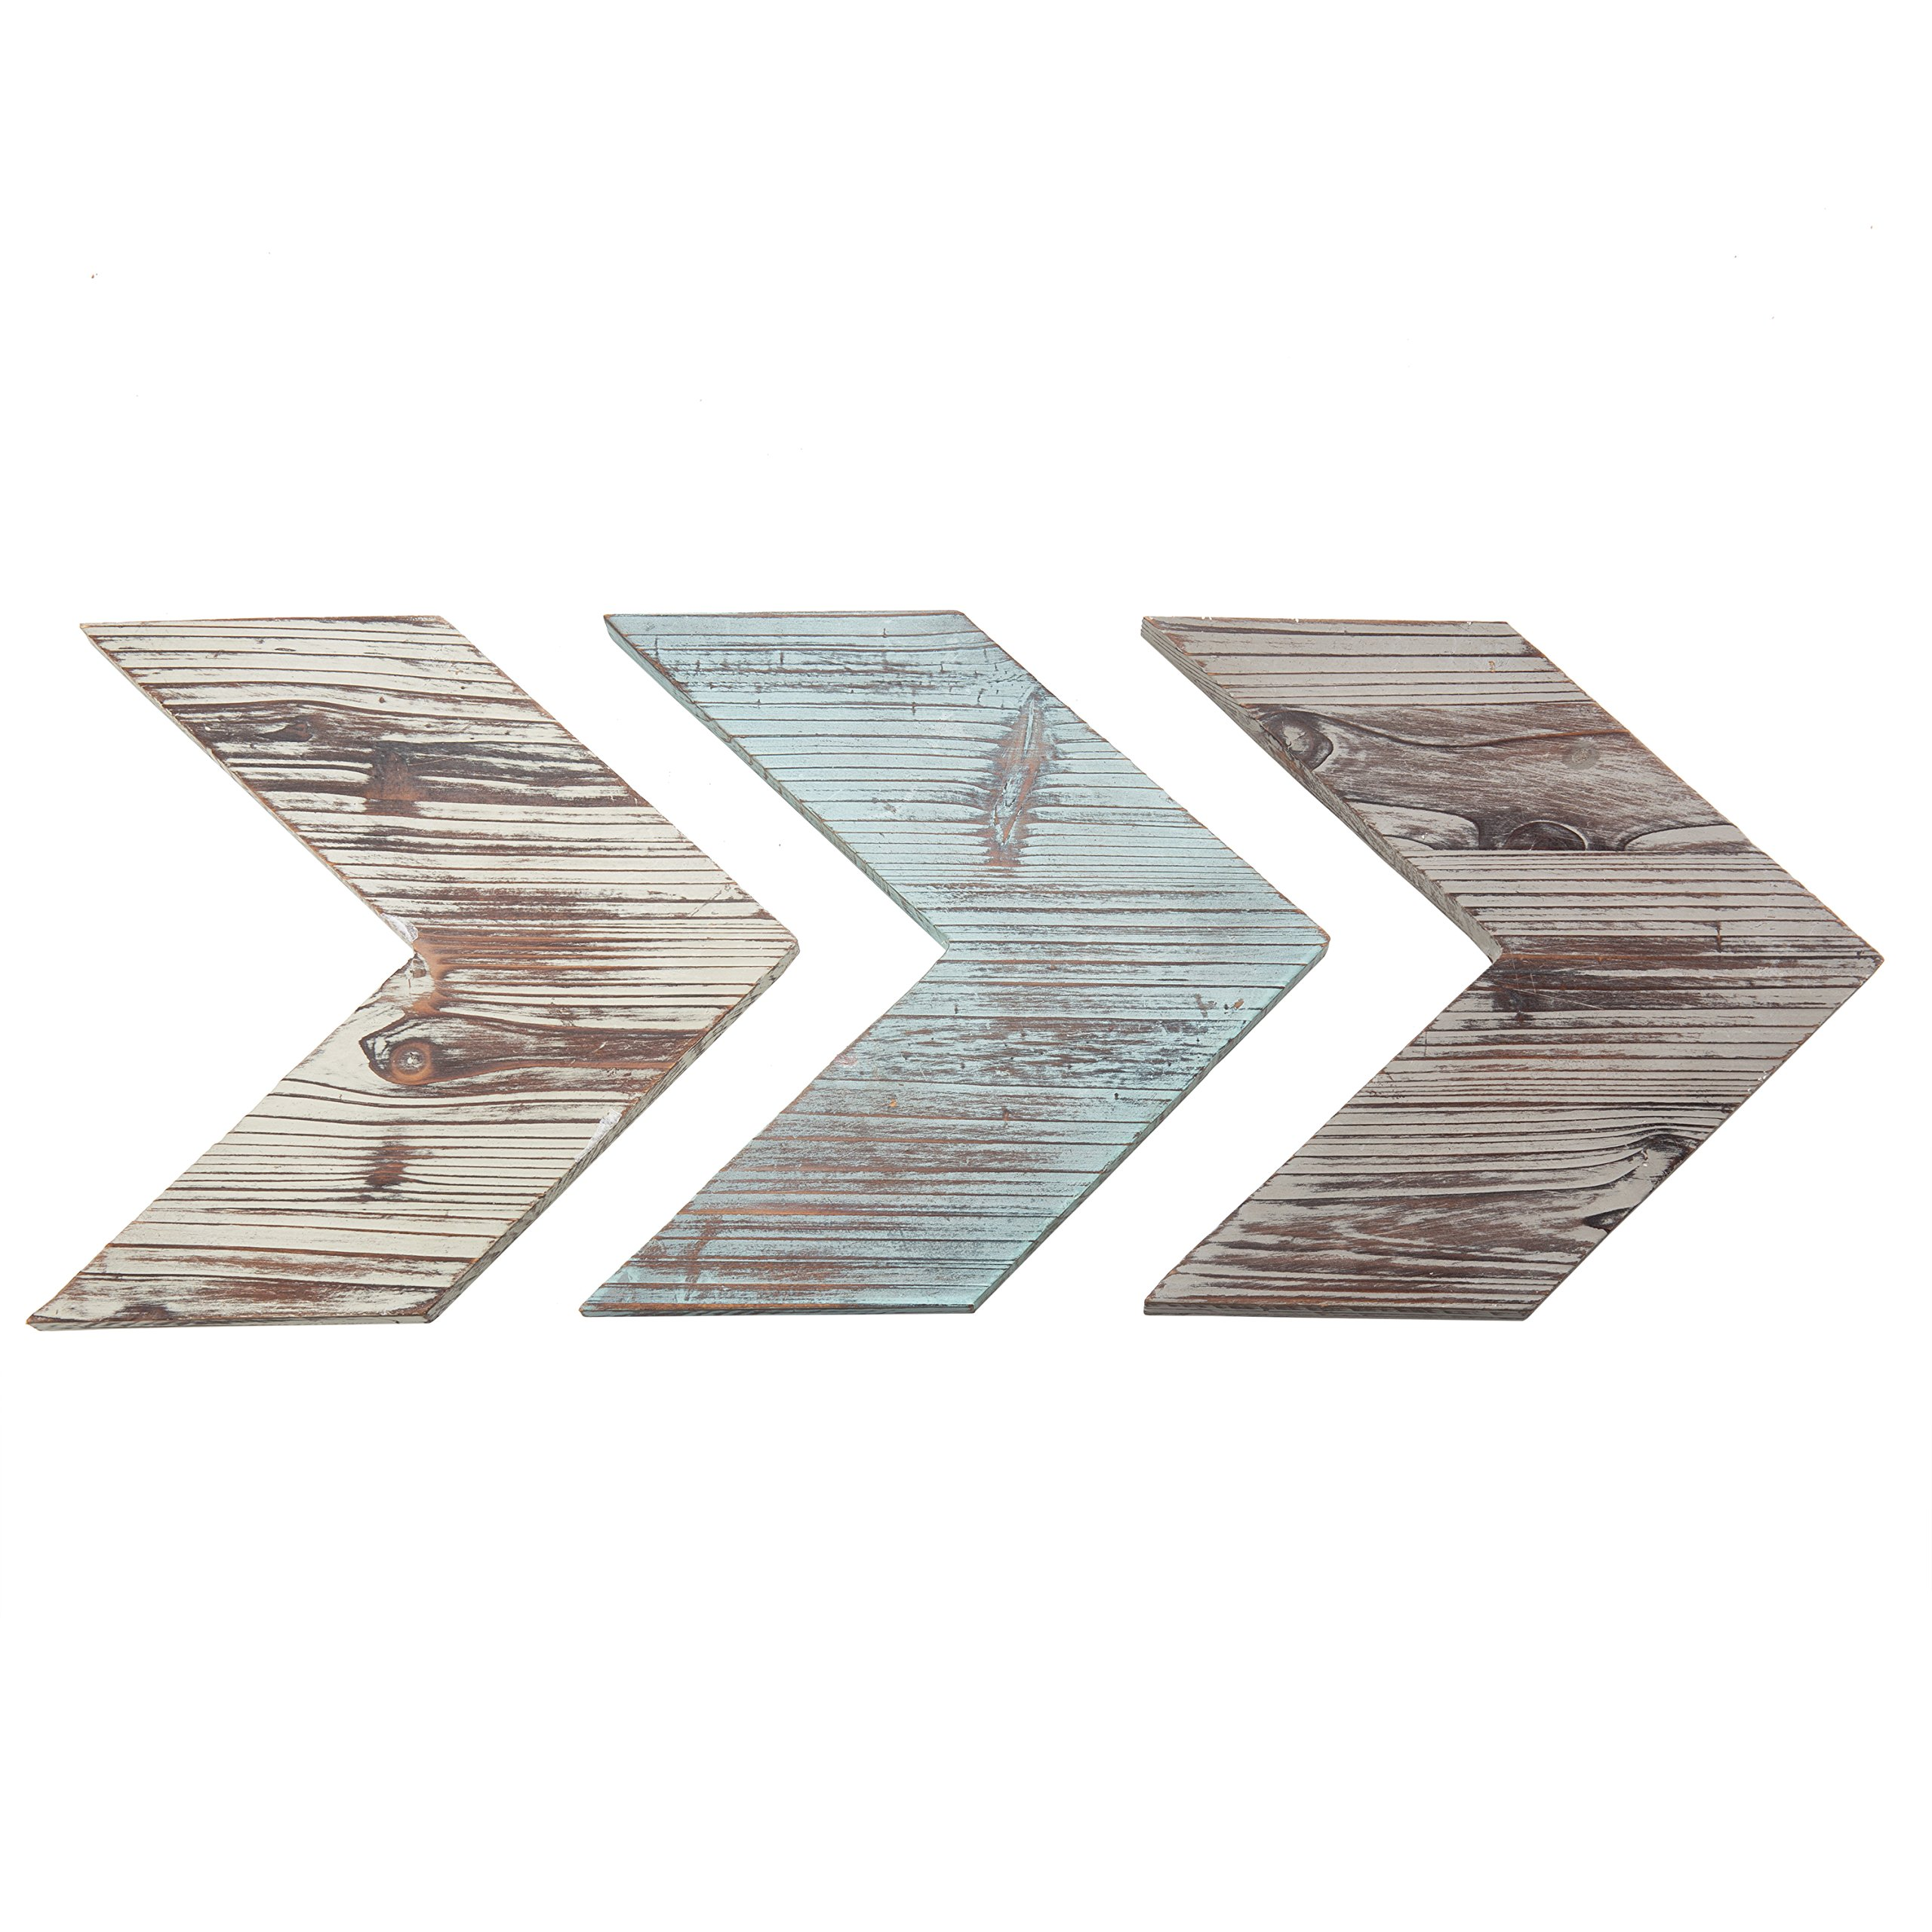 MyGift Wall-Mounted Decorative Mixed Rustic Wood Chevrons, Set of 3 by MyGift